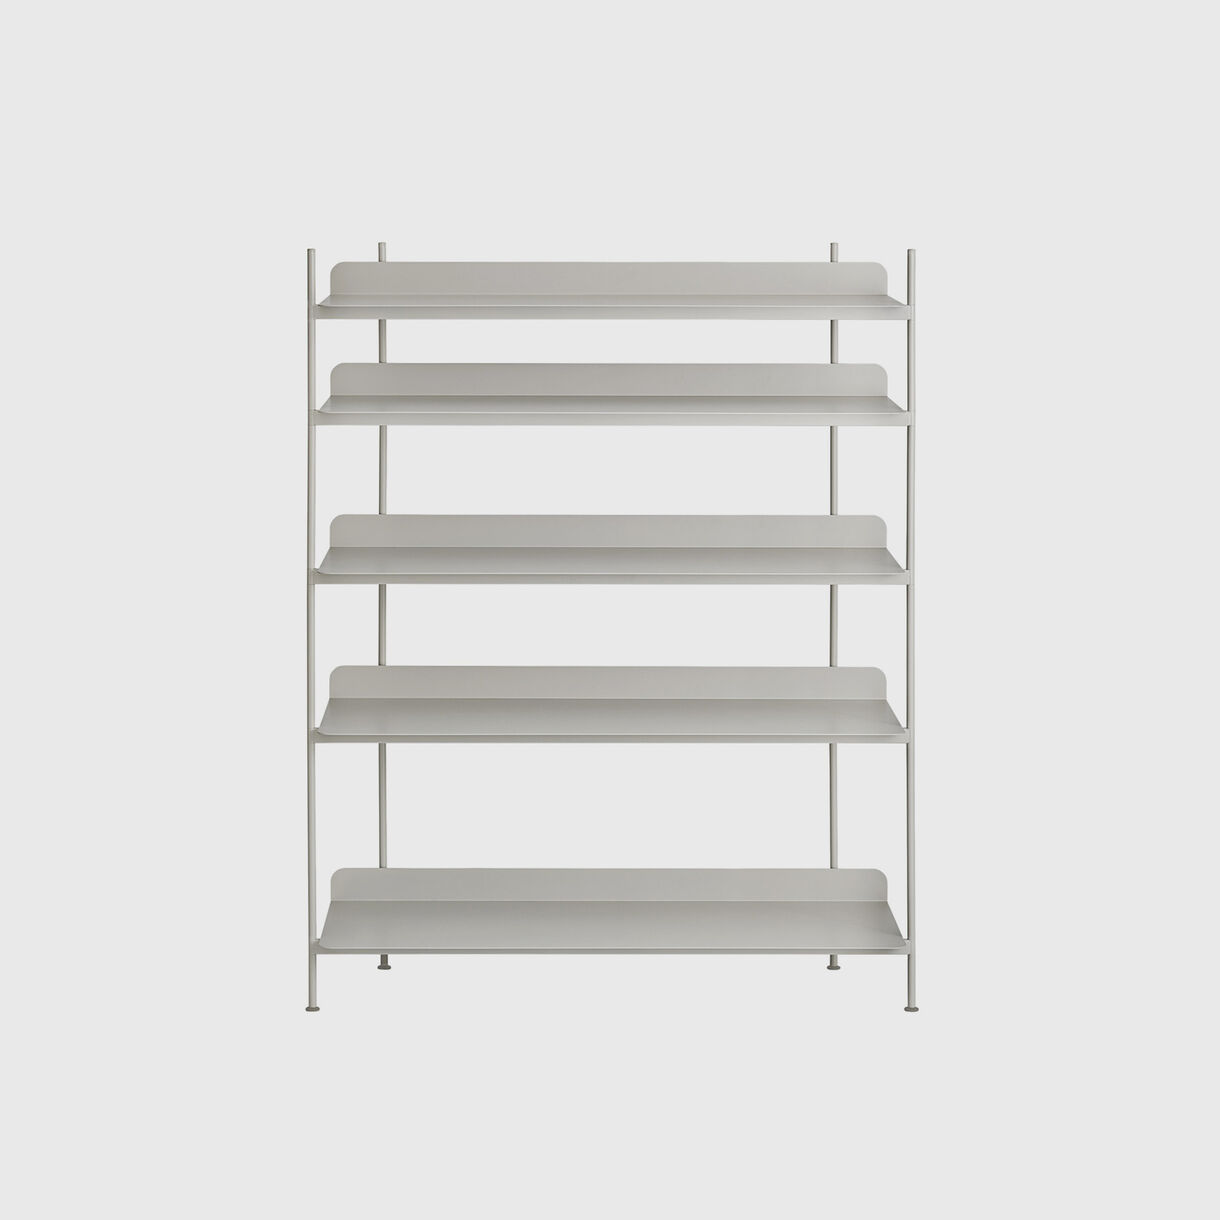 Compile Shelving System, Configuration 3